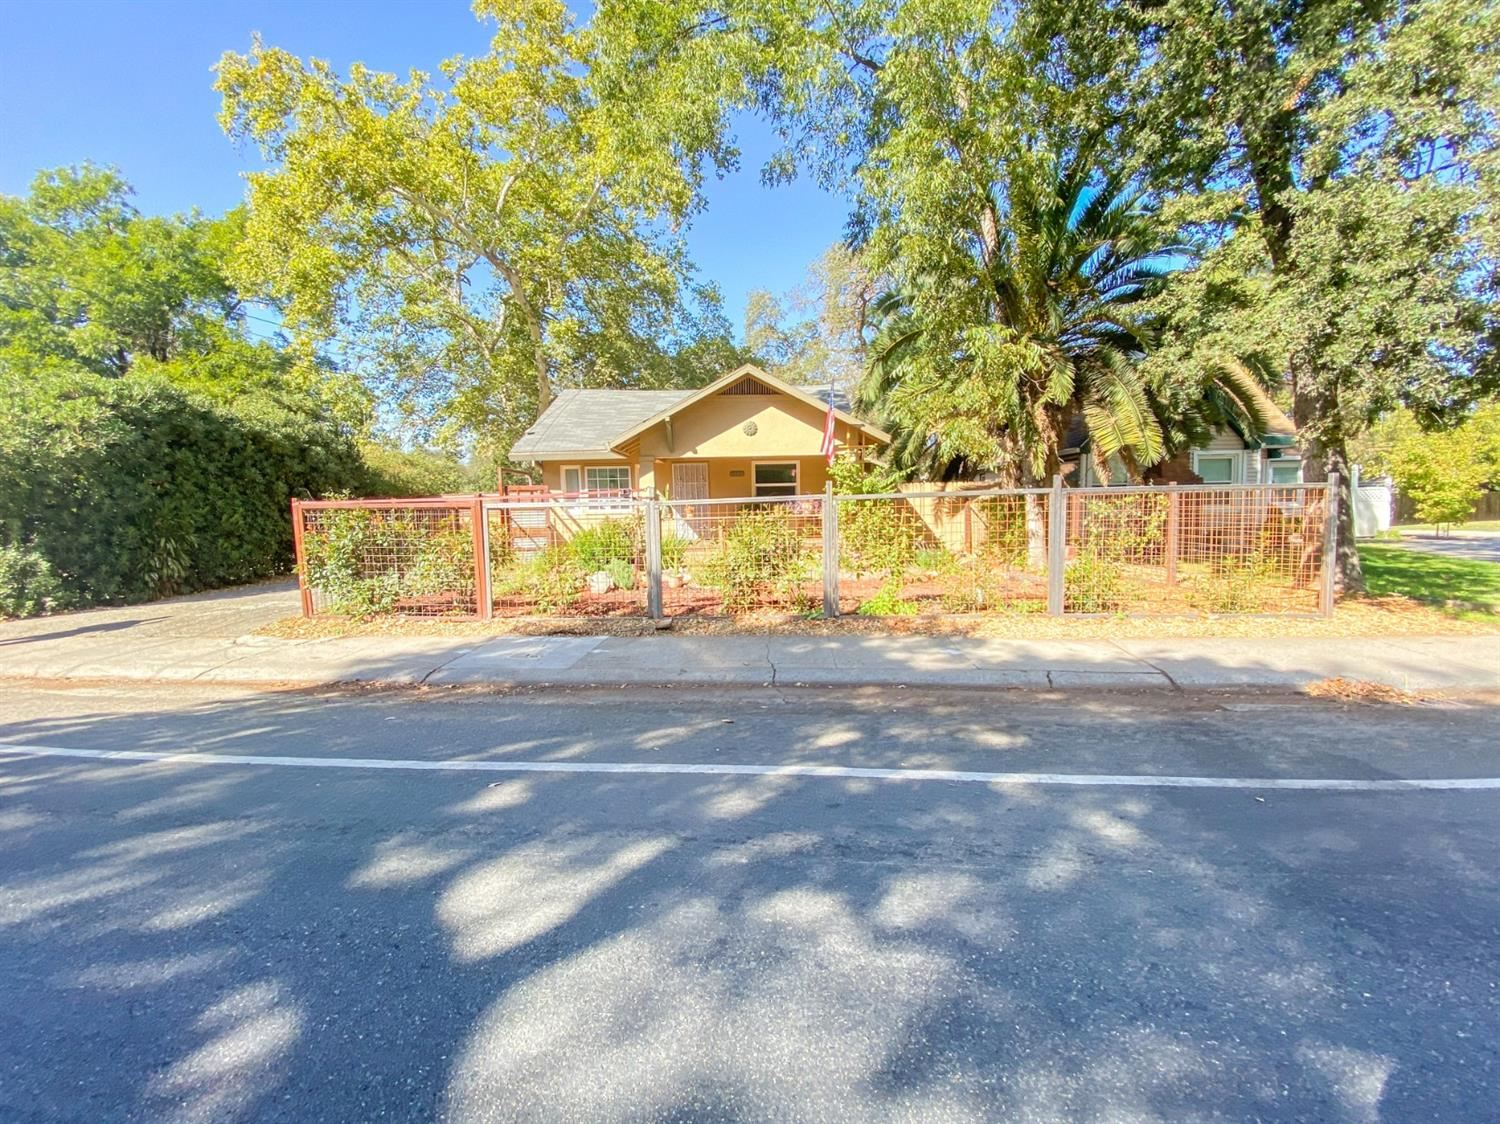 Photo of 1691 Arcade Boulevard, Sacramento, CA 95815 (MLS # 20063085)